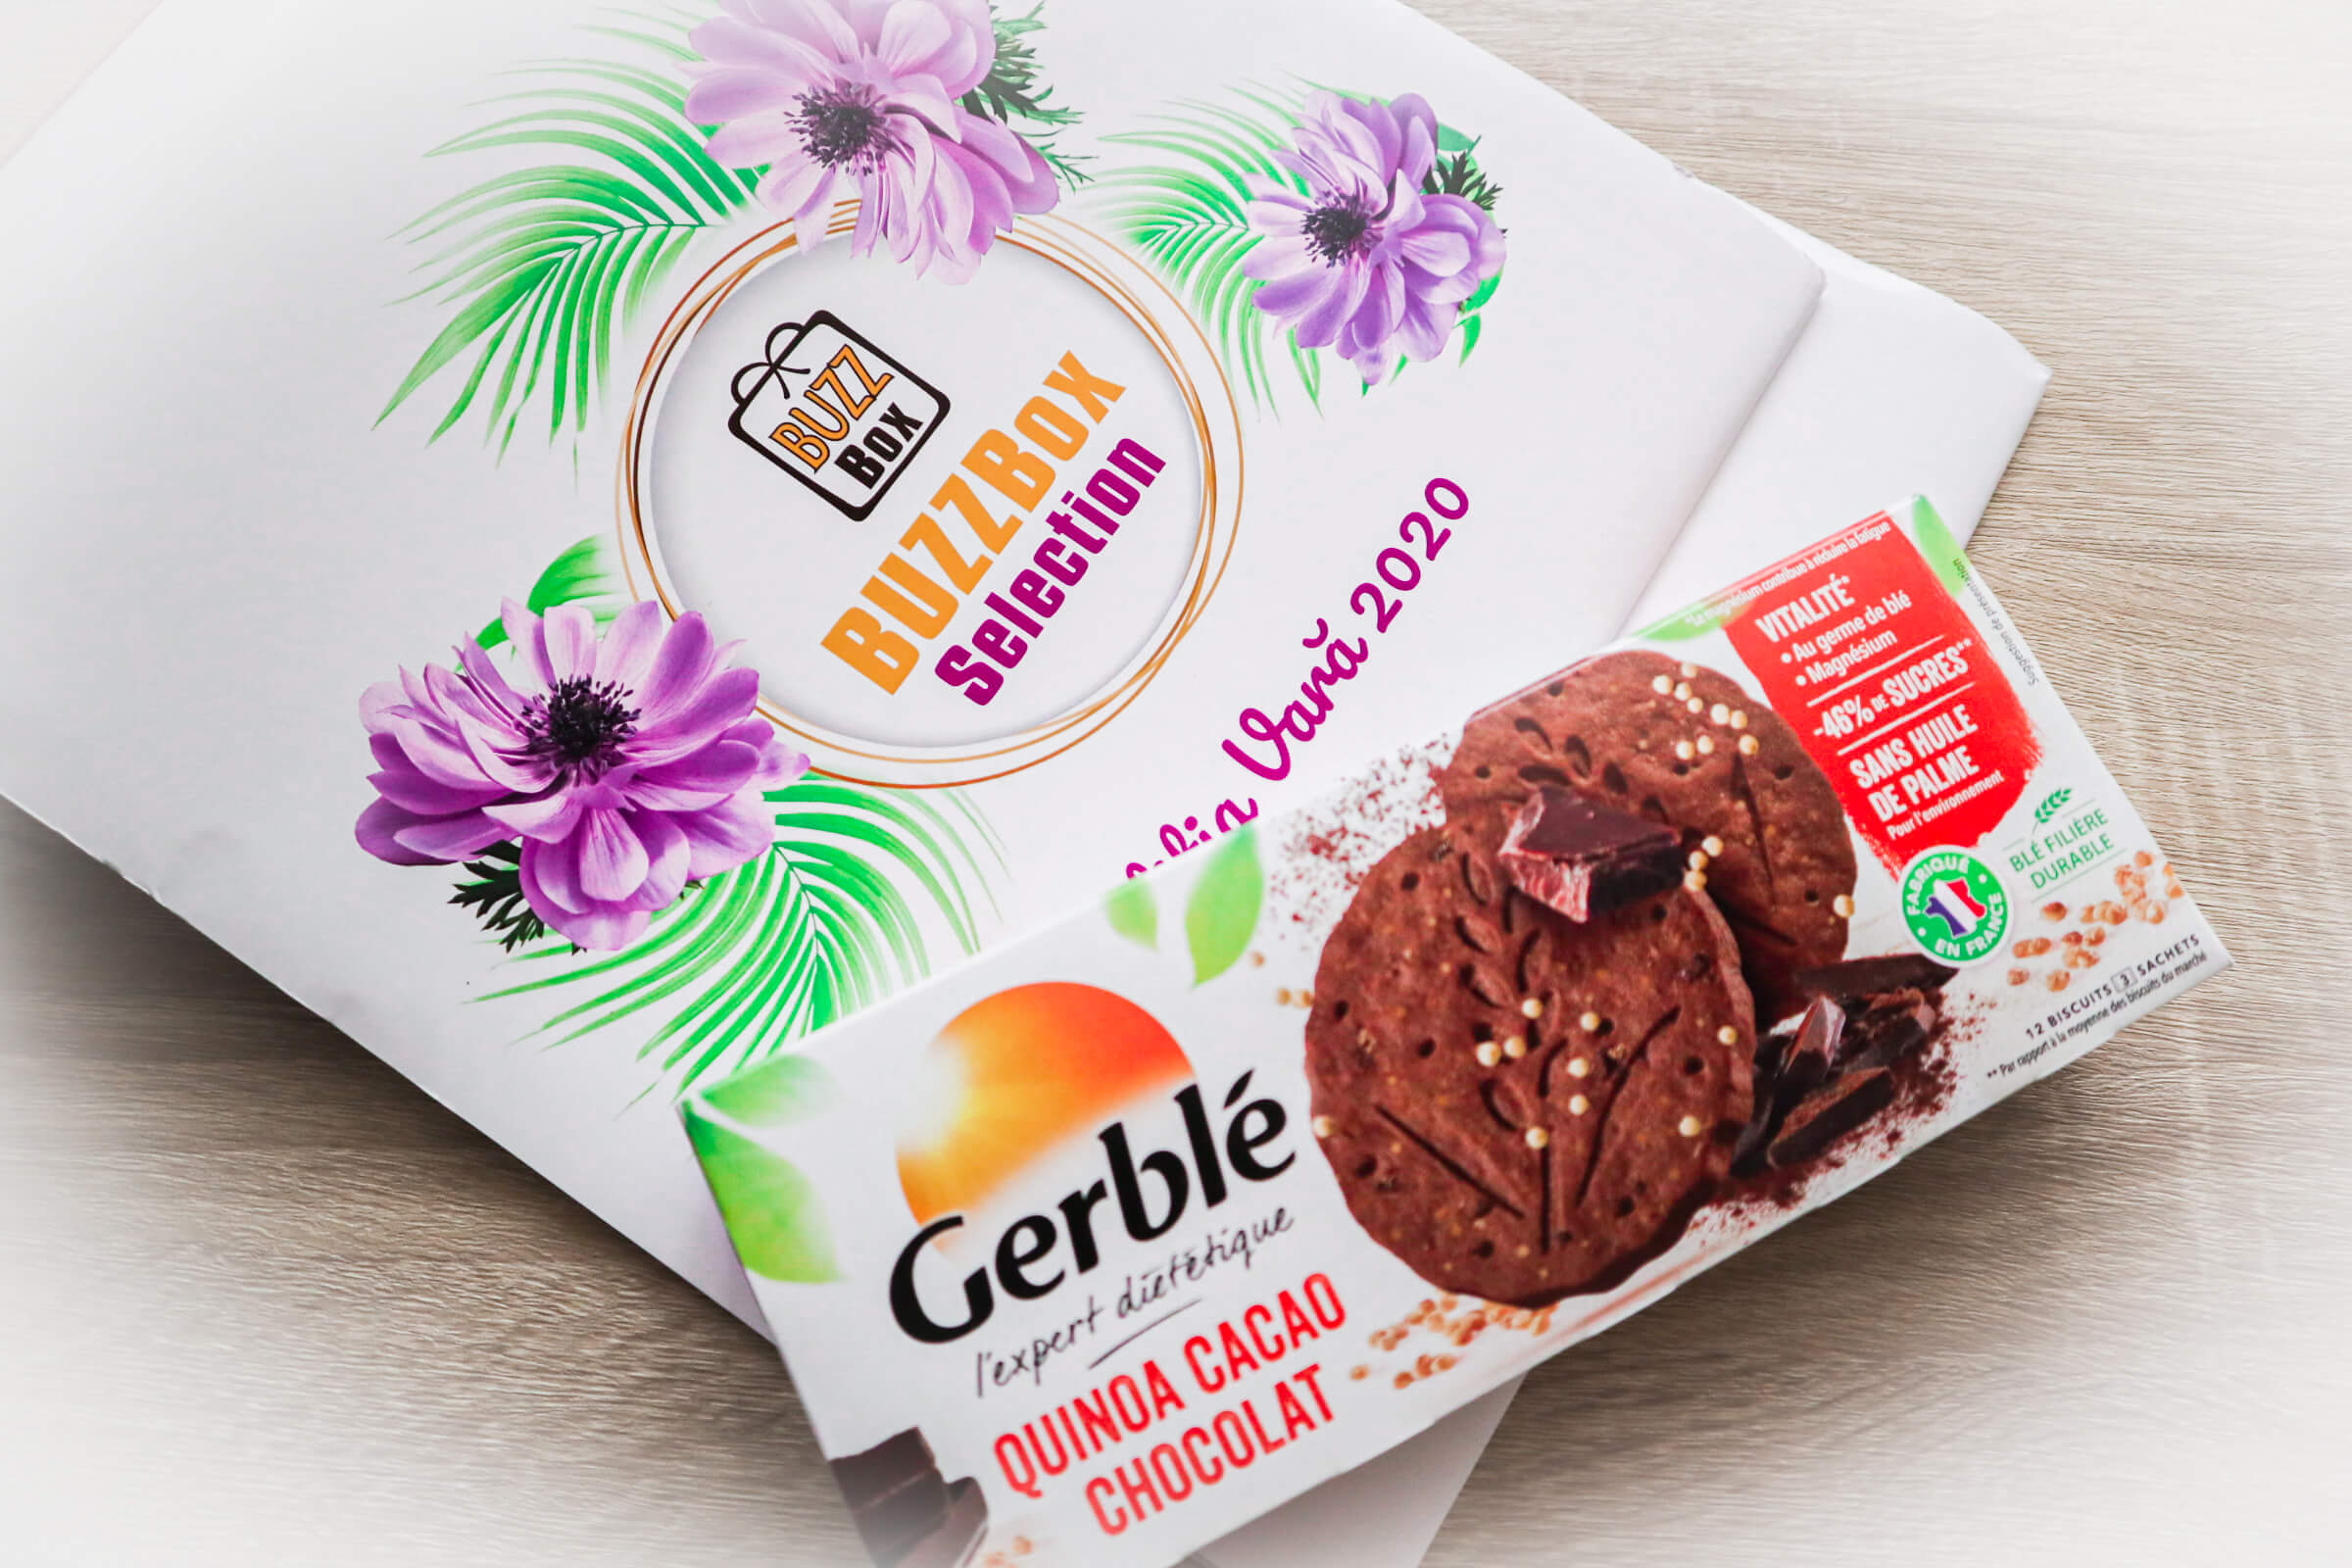 Biscuiti Gerble Buzzbox